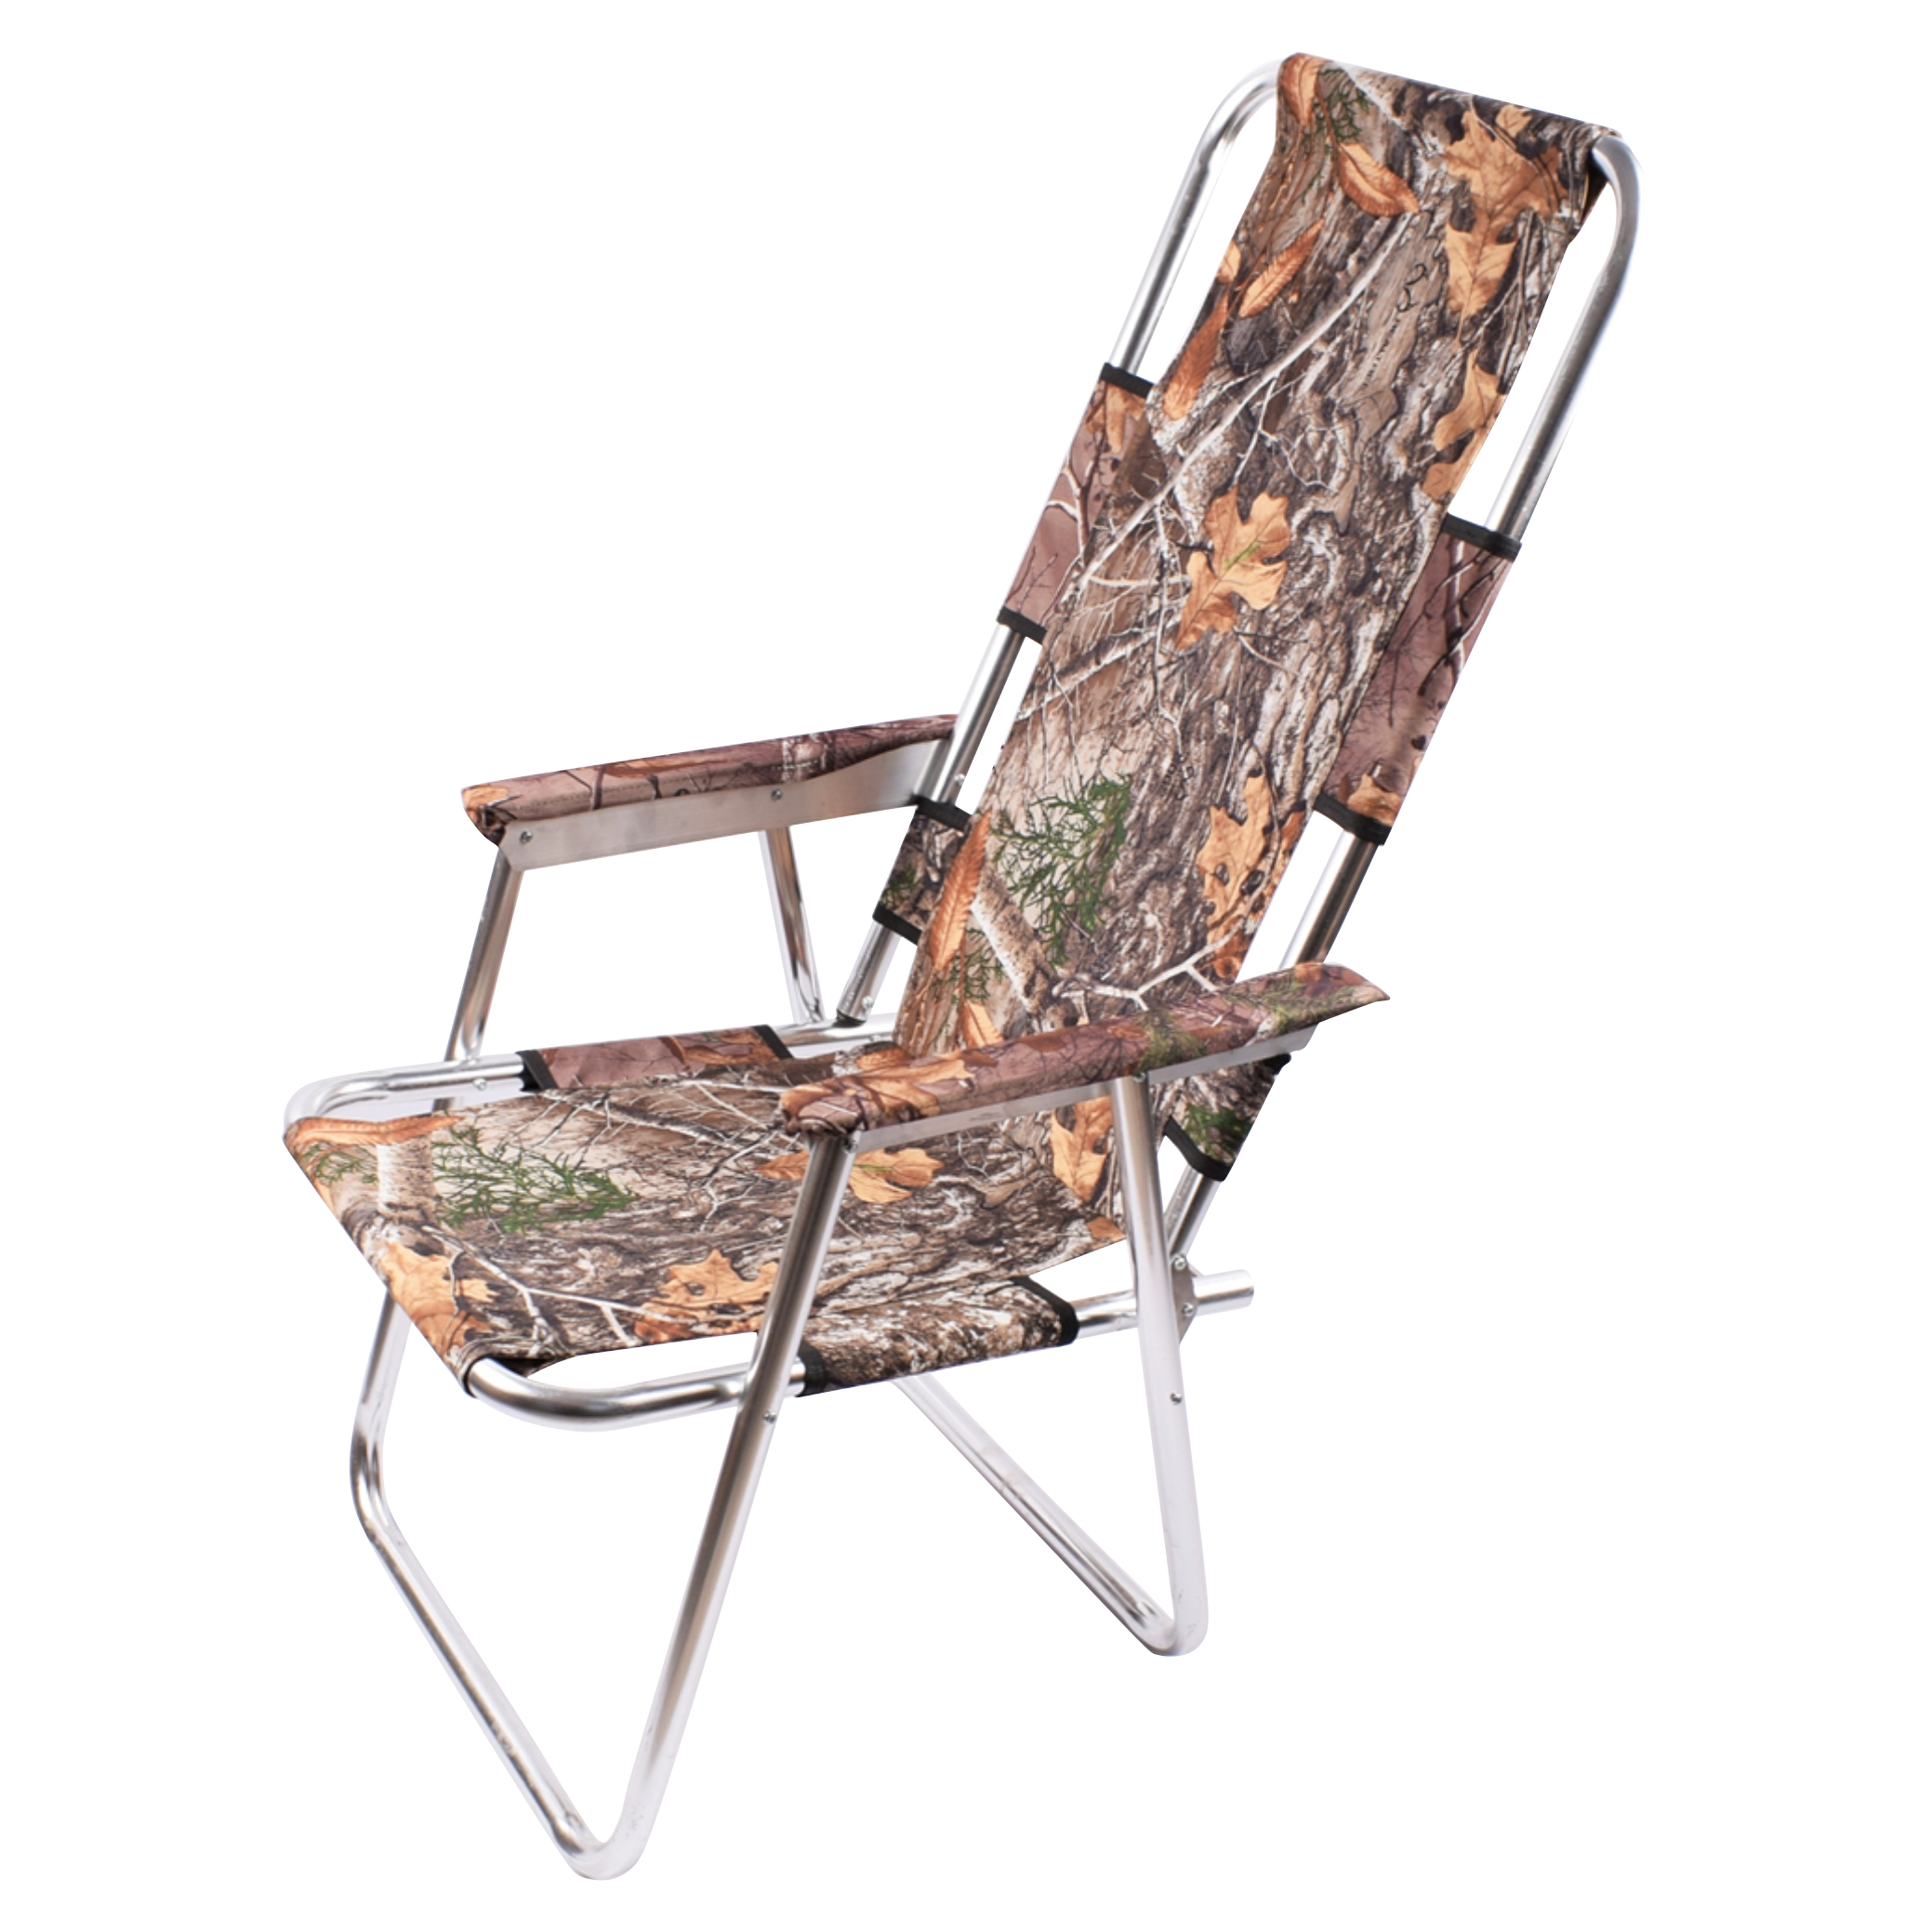 XL Folding Chair For Fishing And Tourism, Portable Folding Chair For Travel, Beach, Picnic Fishing